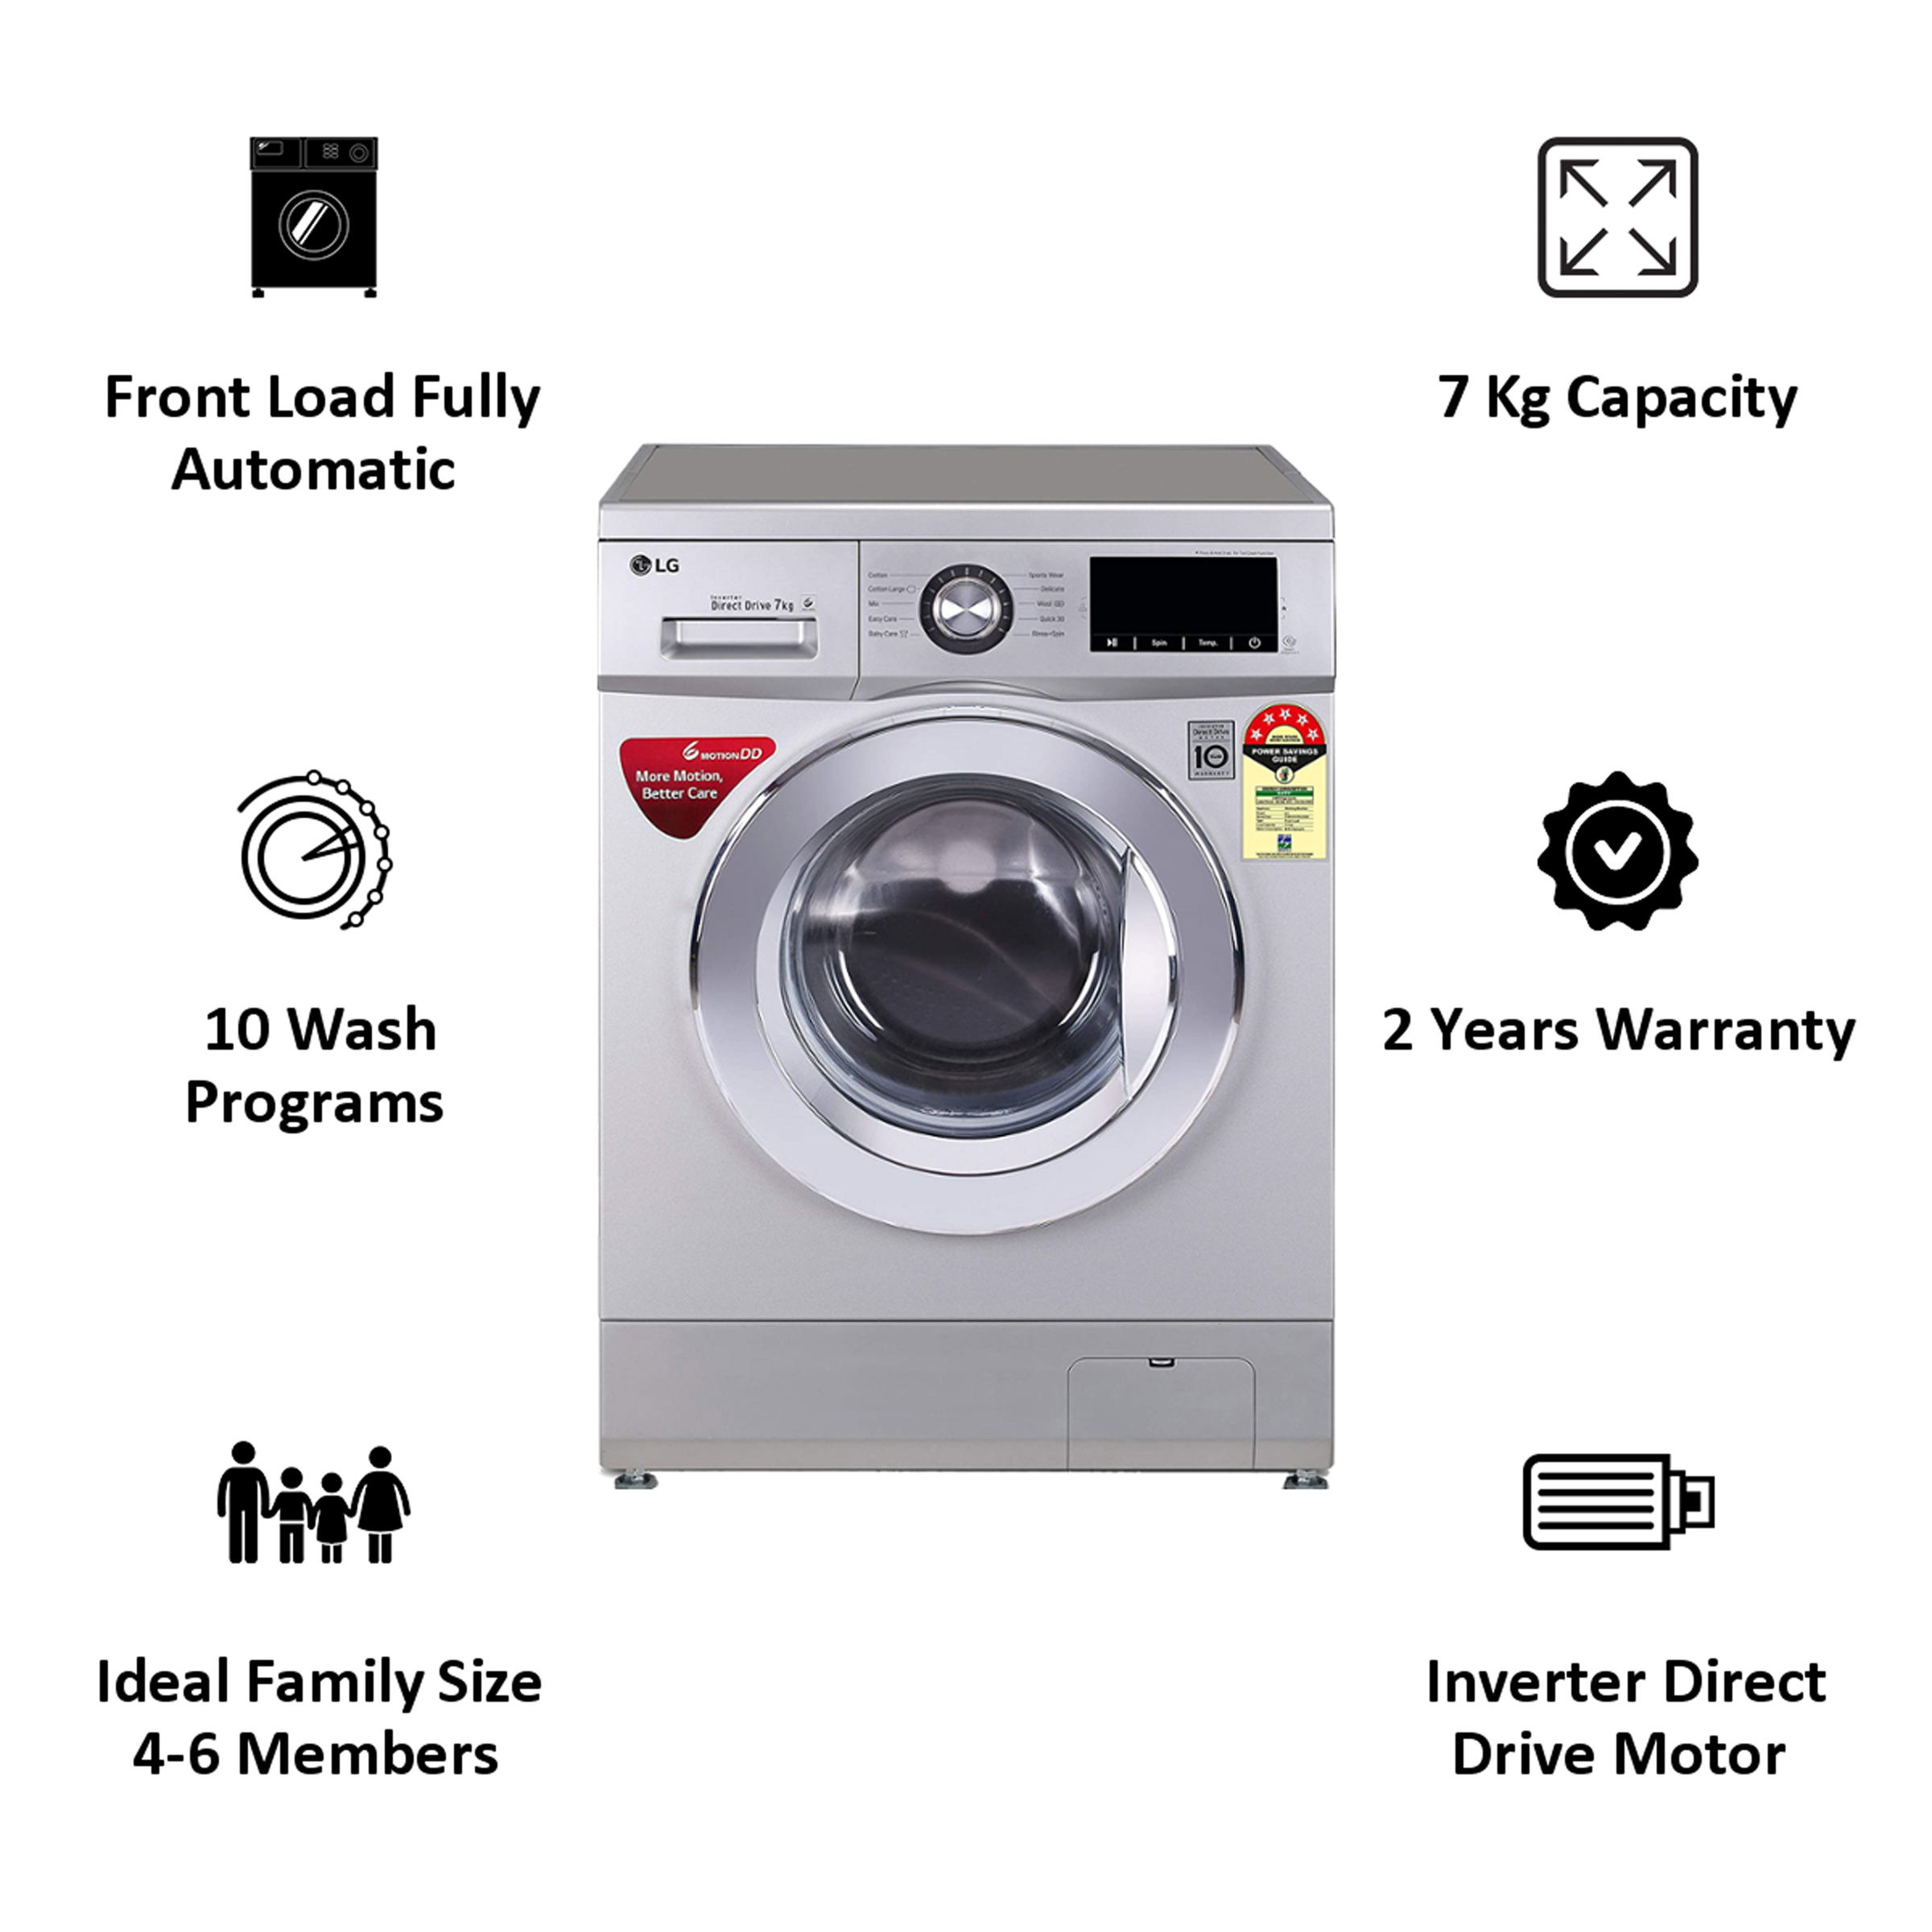 LG 7 kg 5 Star Fully Automatic Front Load Washing Machine (Smart Diagnosis, FHM1207ZDL.ALSQEIL, Luxury Silver) 5